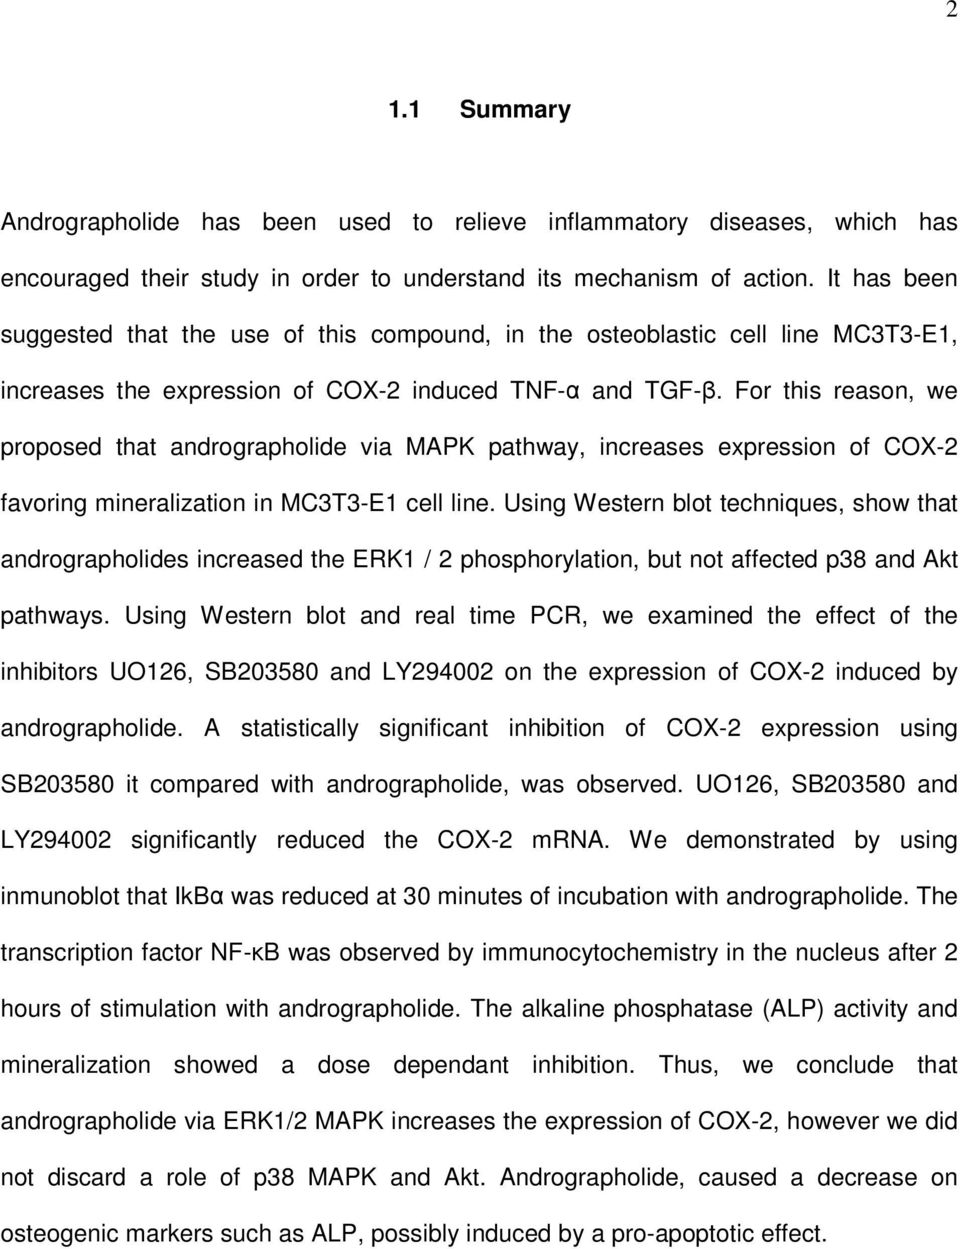 For this reason, we proposed that andrographolide via MAPK pathway, increases expression of COX-2 favoring mineralization in MC3T3-E1 cell line.